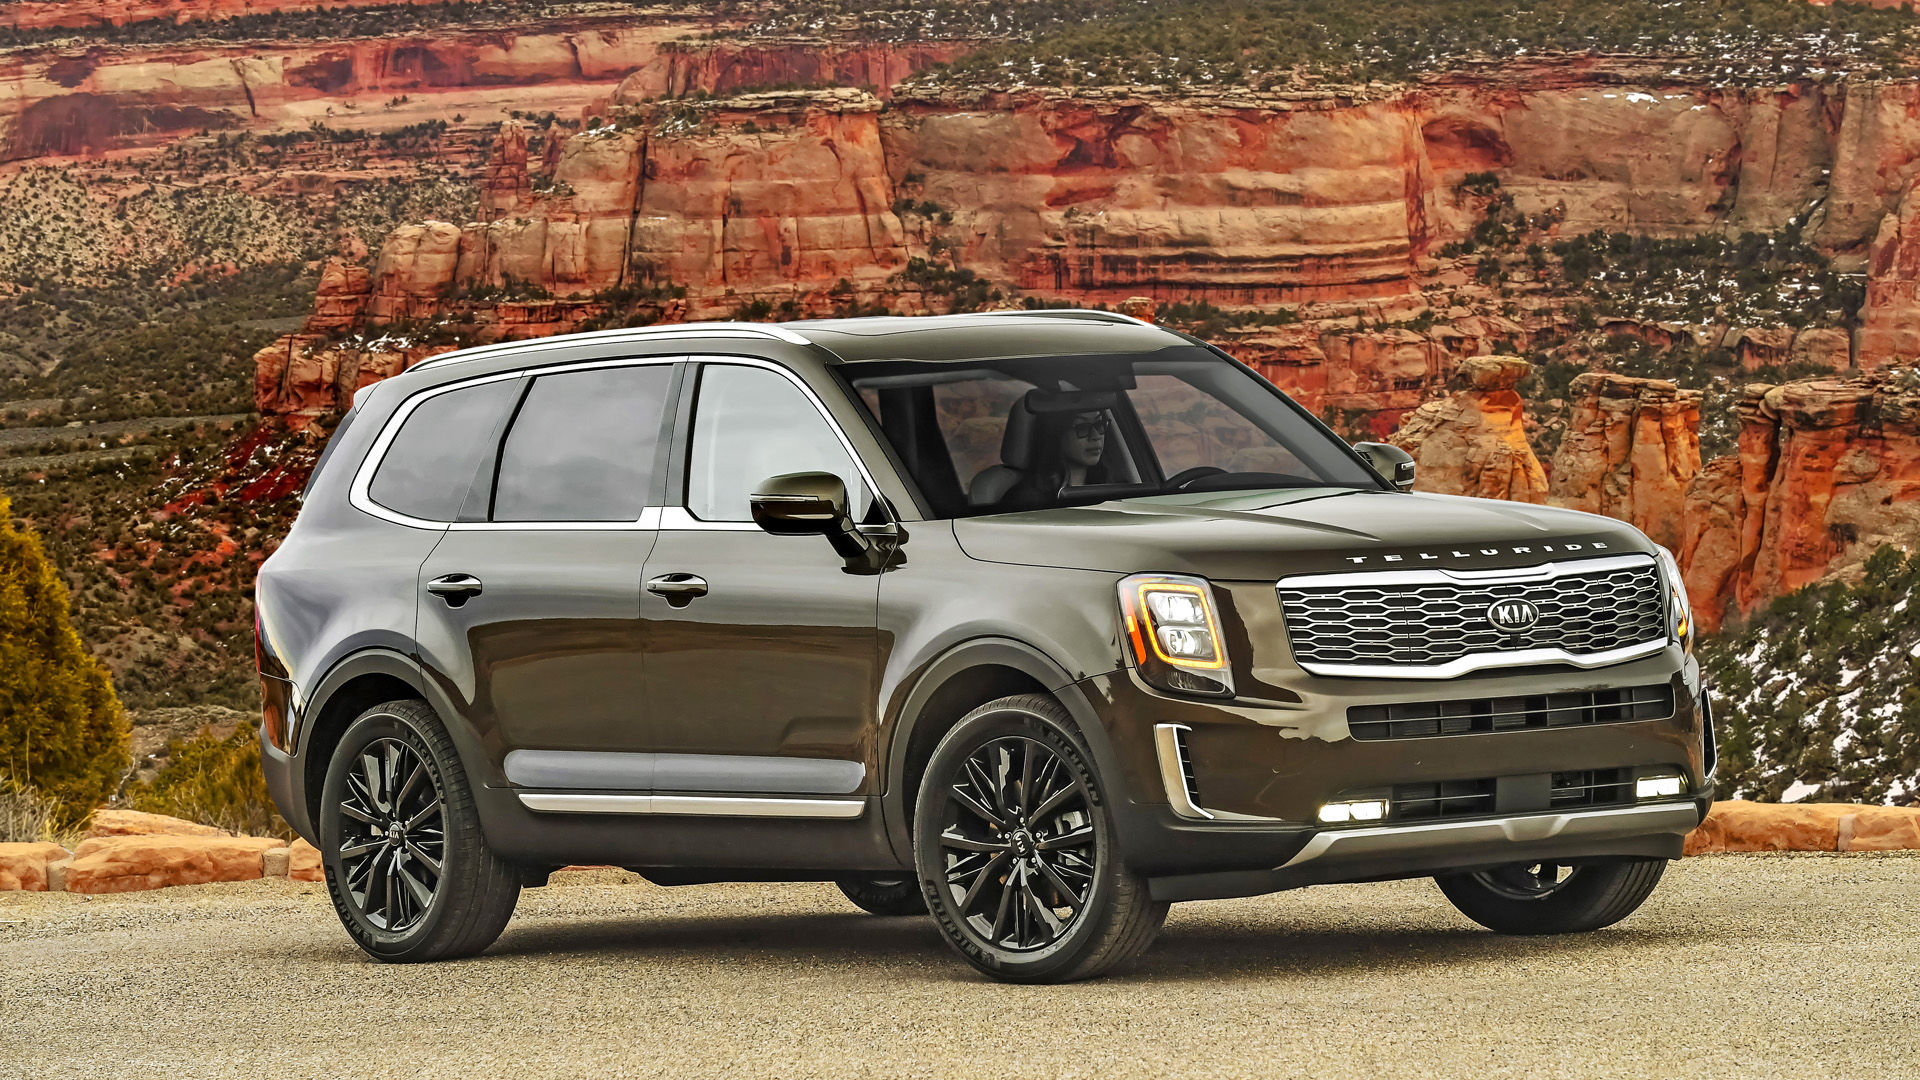 2020 Kia Telluride Reviews Price specs features and photos 1920x1080